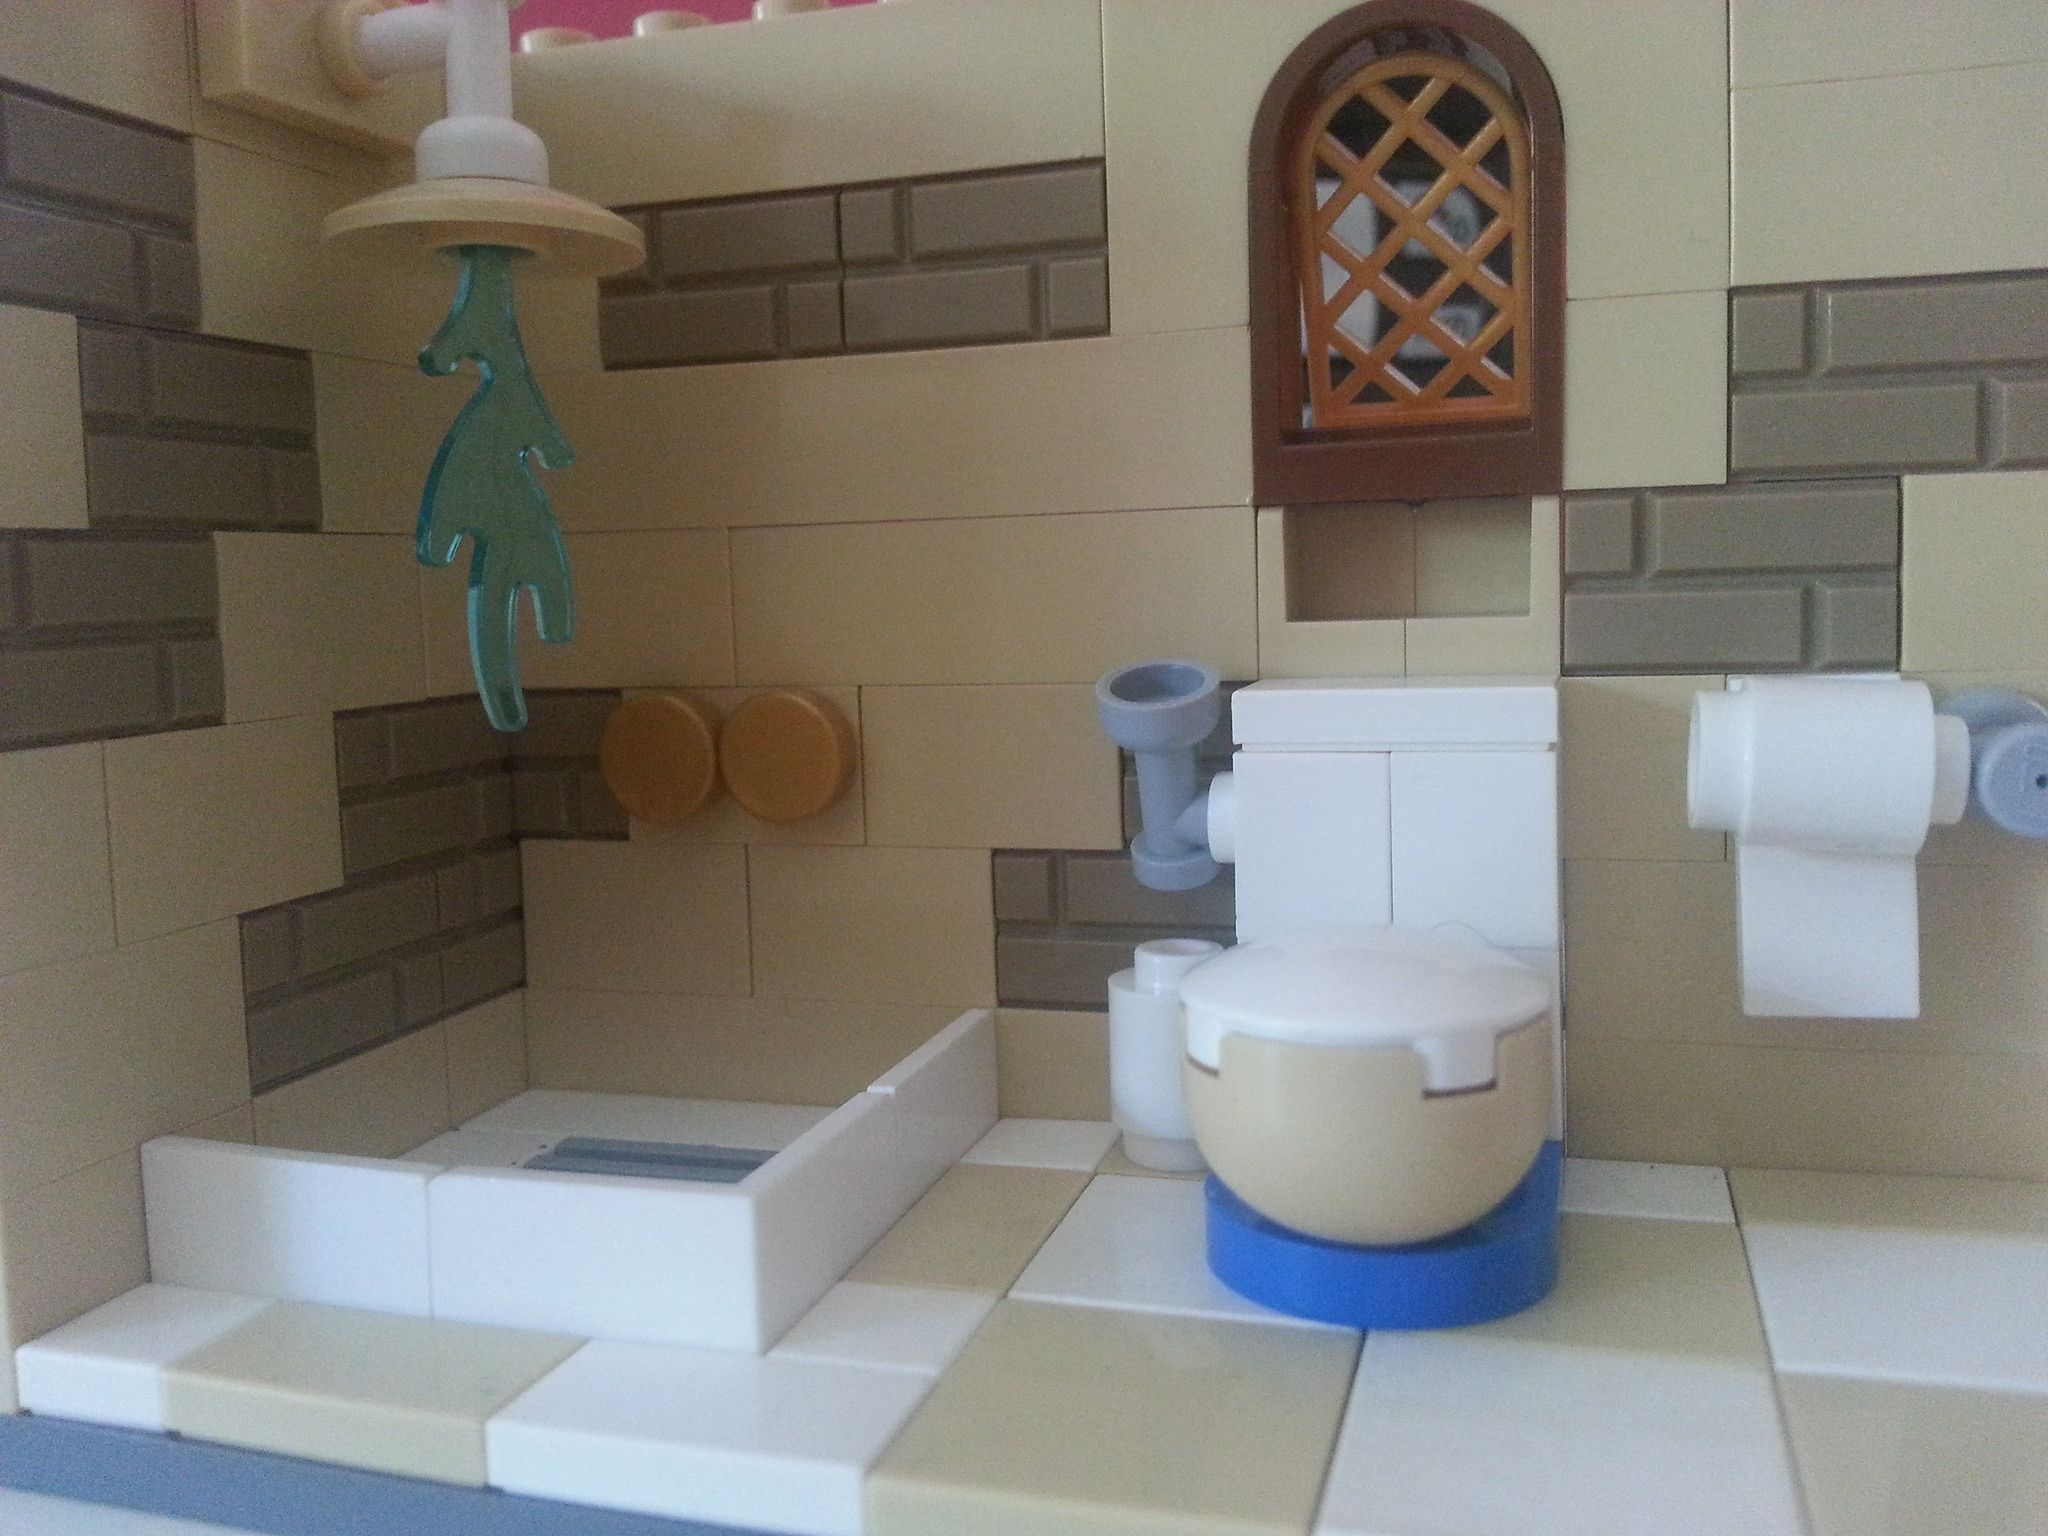 Lego Friends Badezimmer Lego Bathroom Lego Interiors Lego Bathroom Lego Kitchen